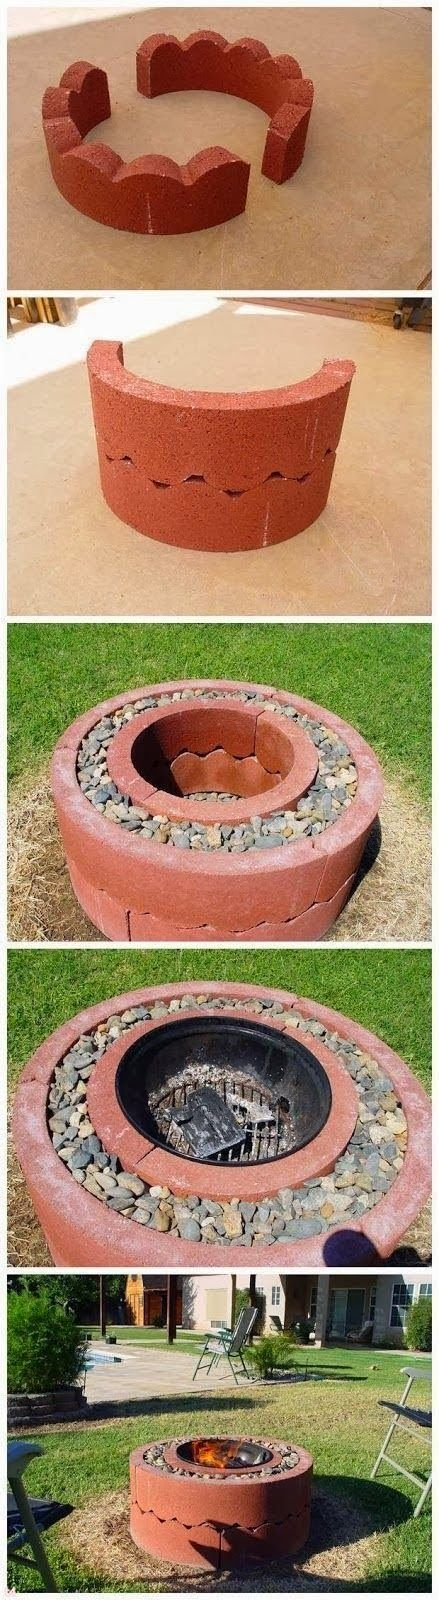 Plan Your Backyard Landscaping Design Ahead With These 35 Smart DIY Fire Pit Projects homesthetics backyard designs (4)